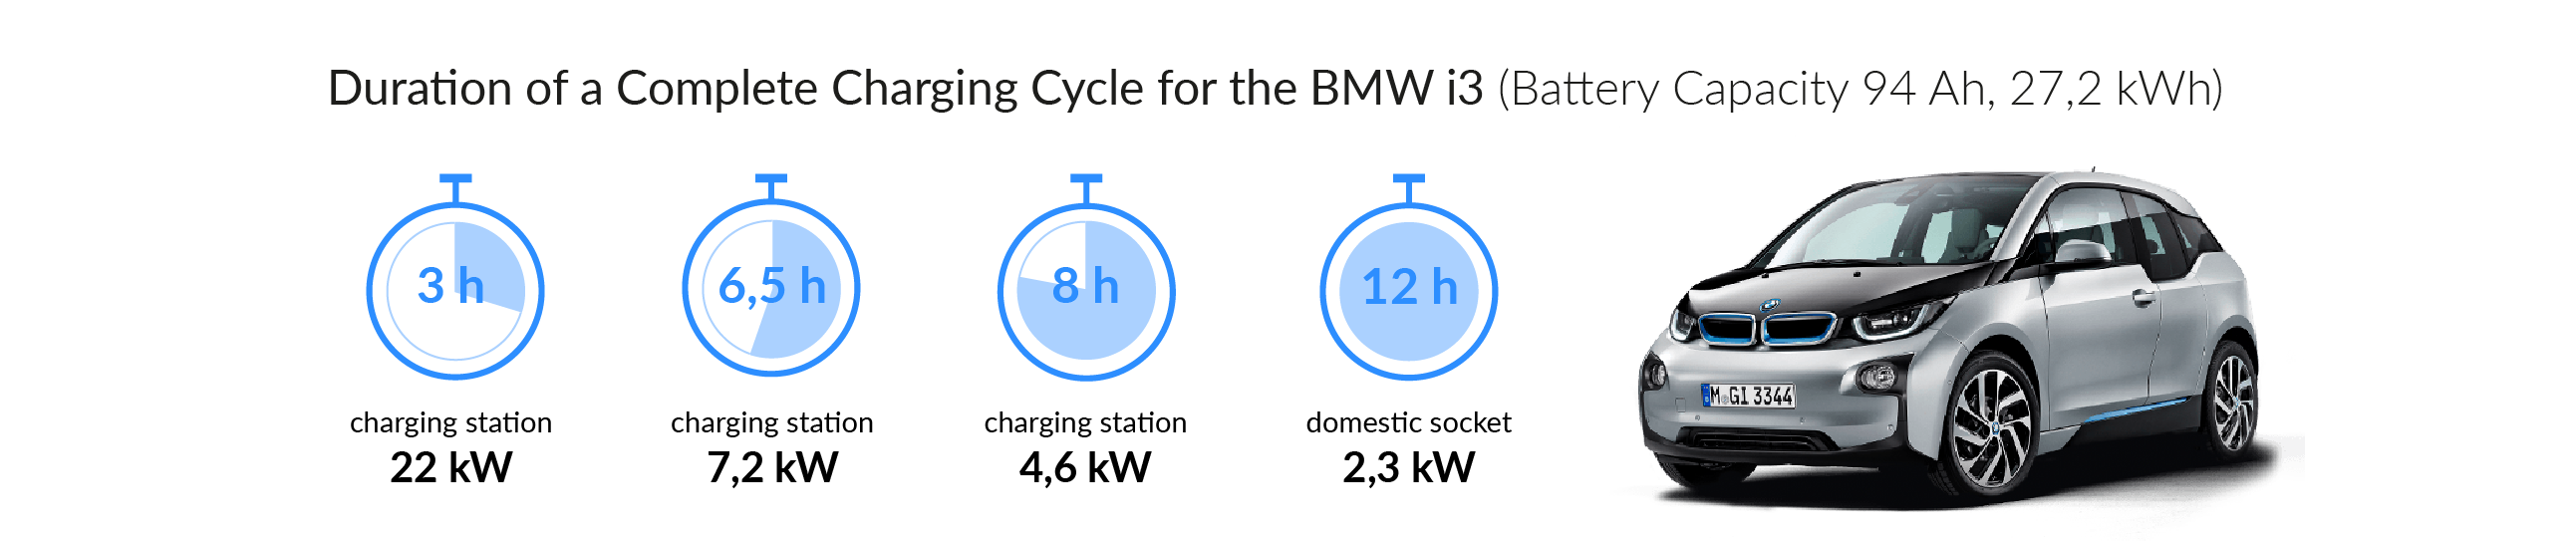 Charging time for your BMW i3